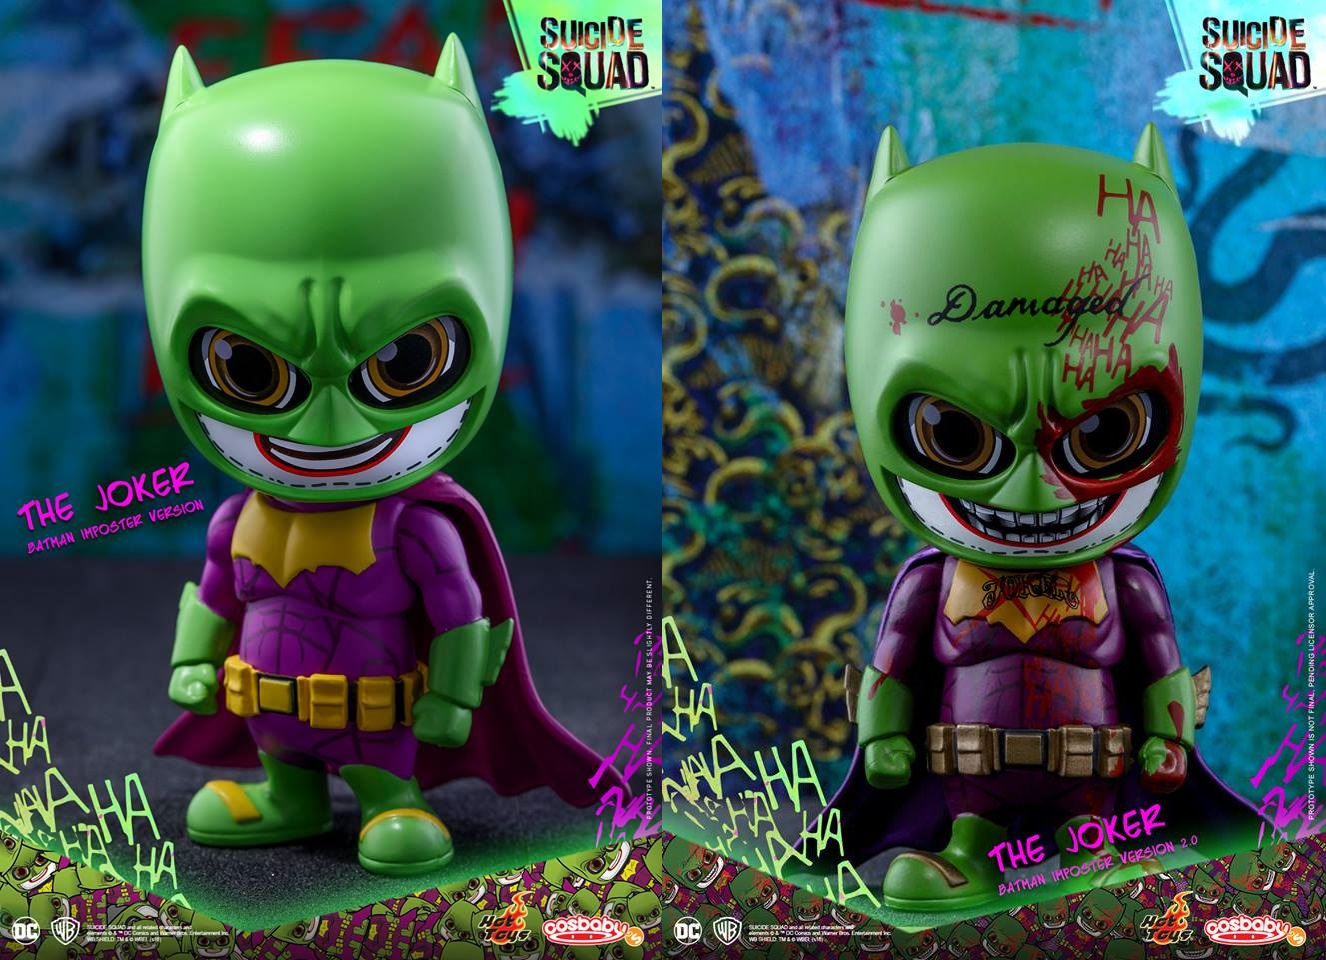 The Blot Says Suicide Squad Cosbaby Vinyl Figure